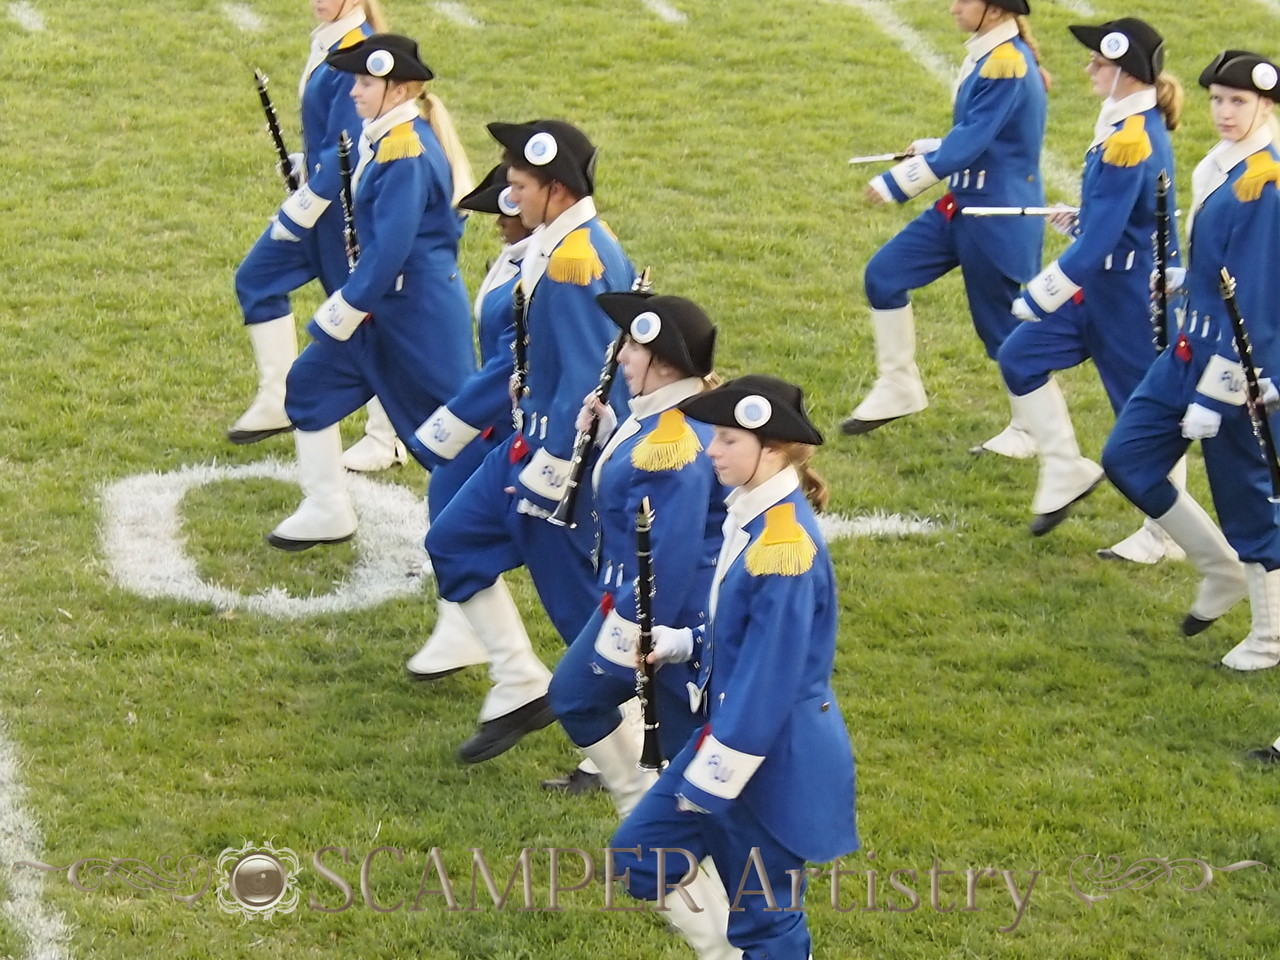 Marching Generals, Showcase of Bands, Sept. 28, 2013